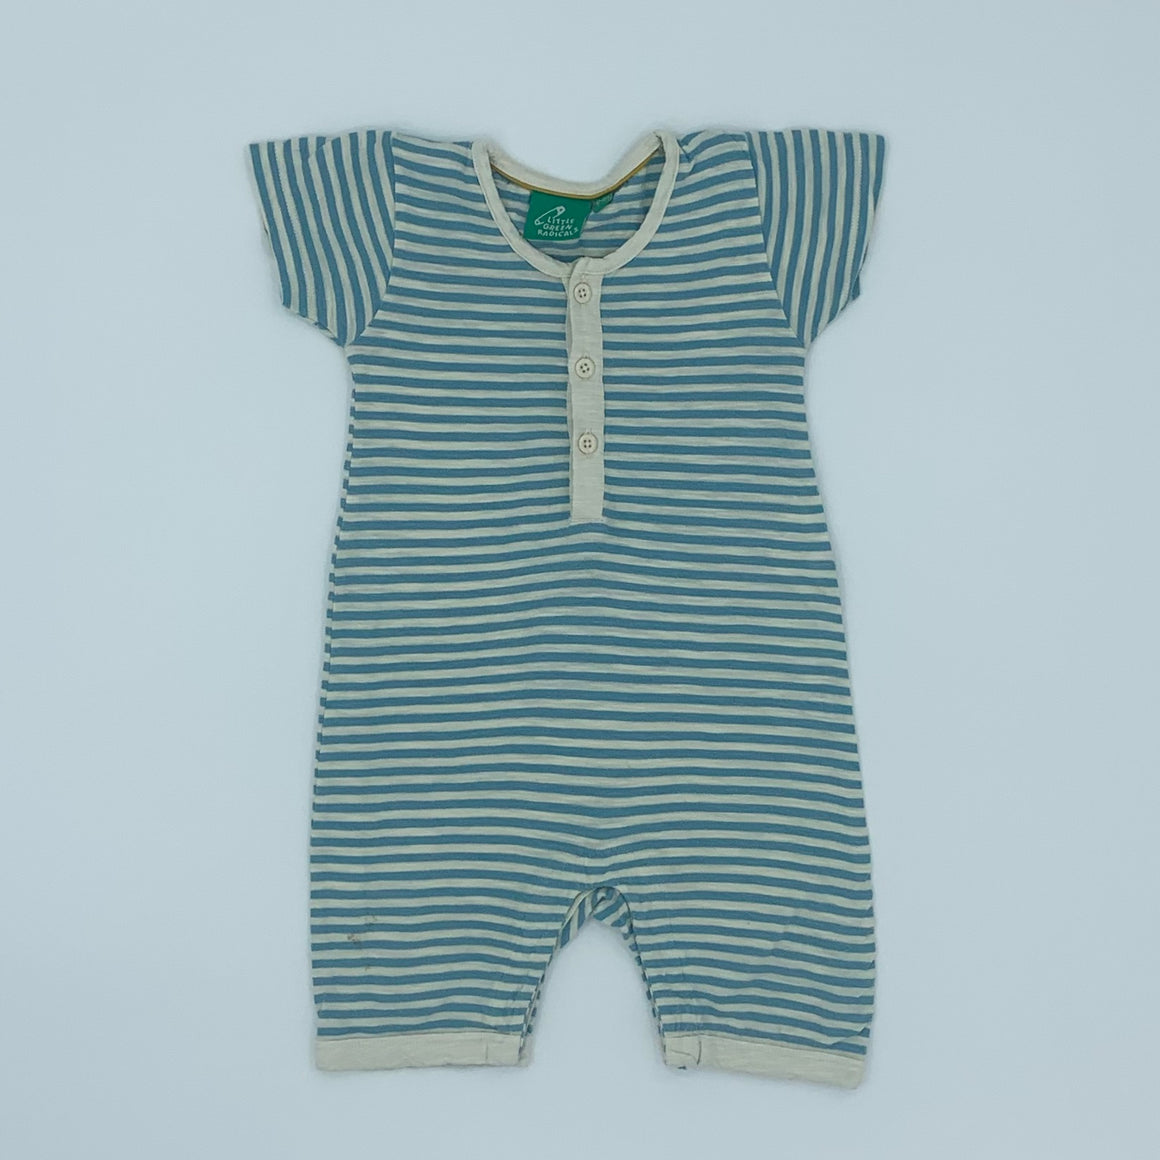 Gently Worn Little Green Radicals blue striped summer romper size 12-18 months